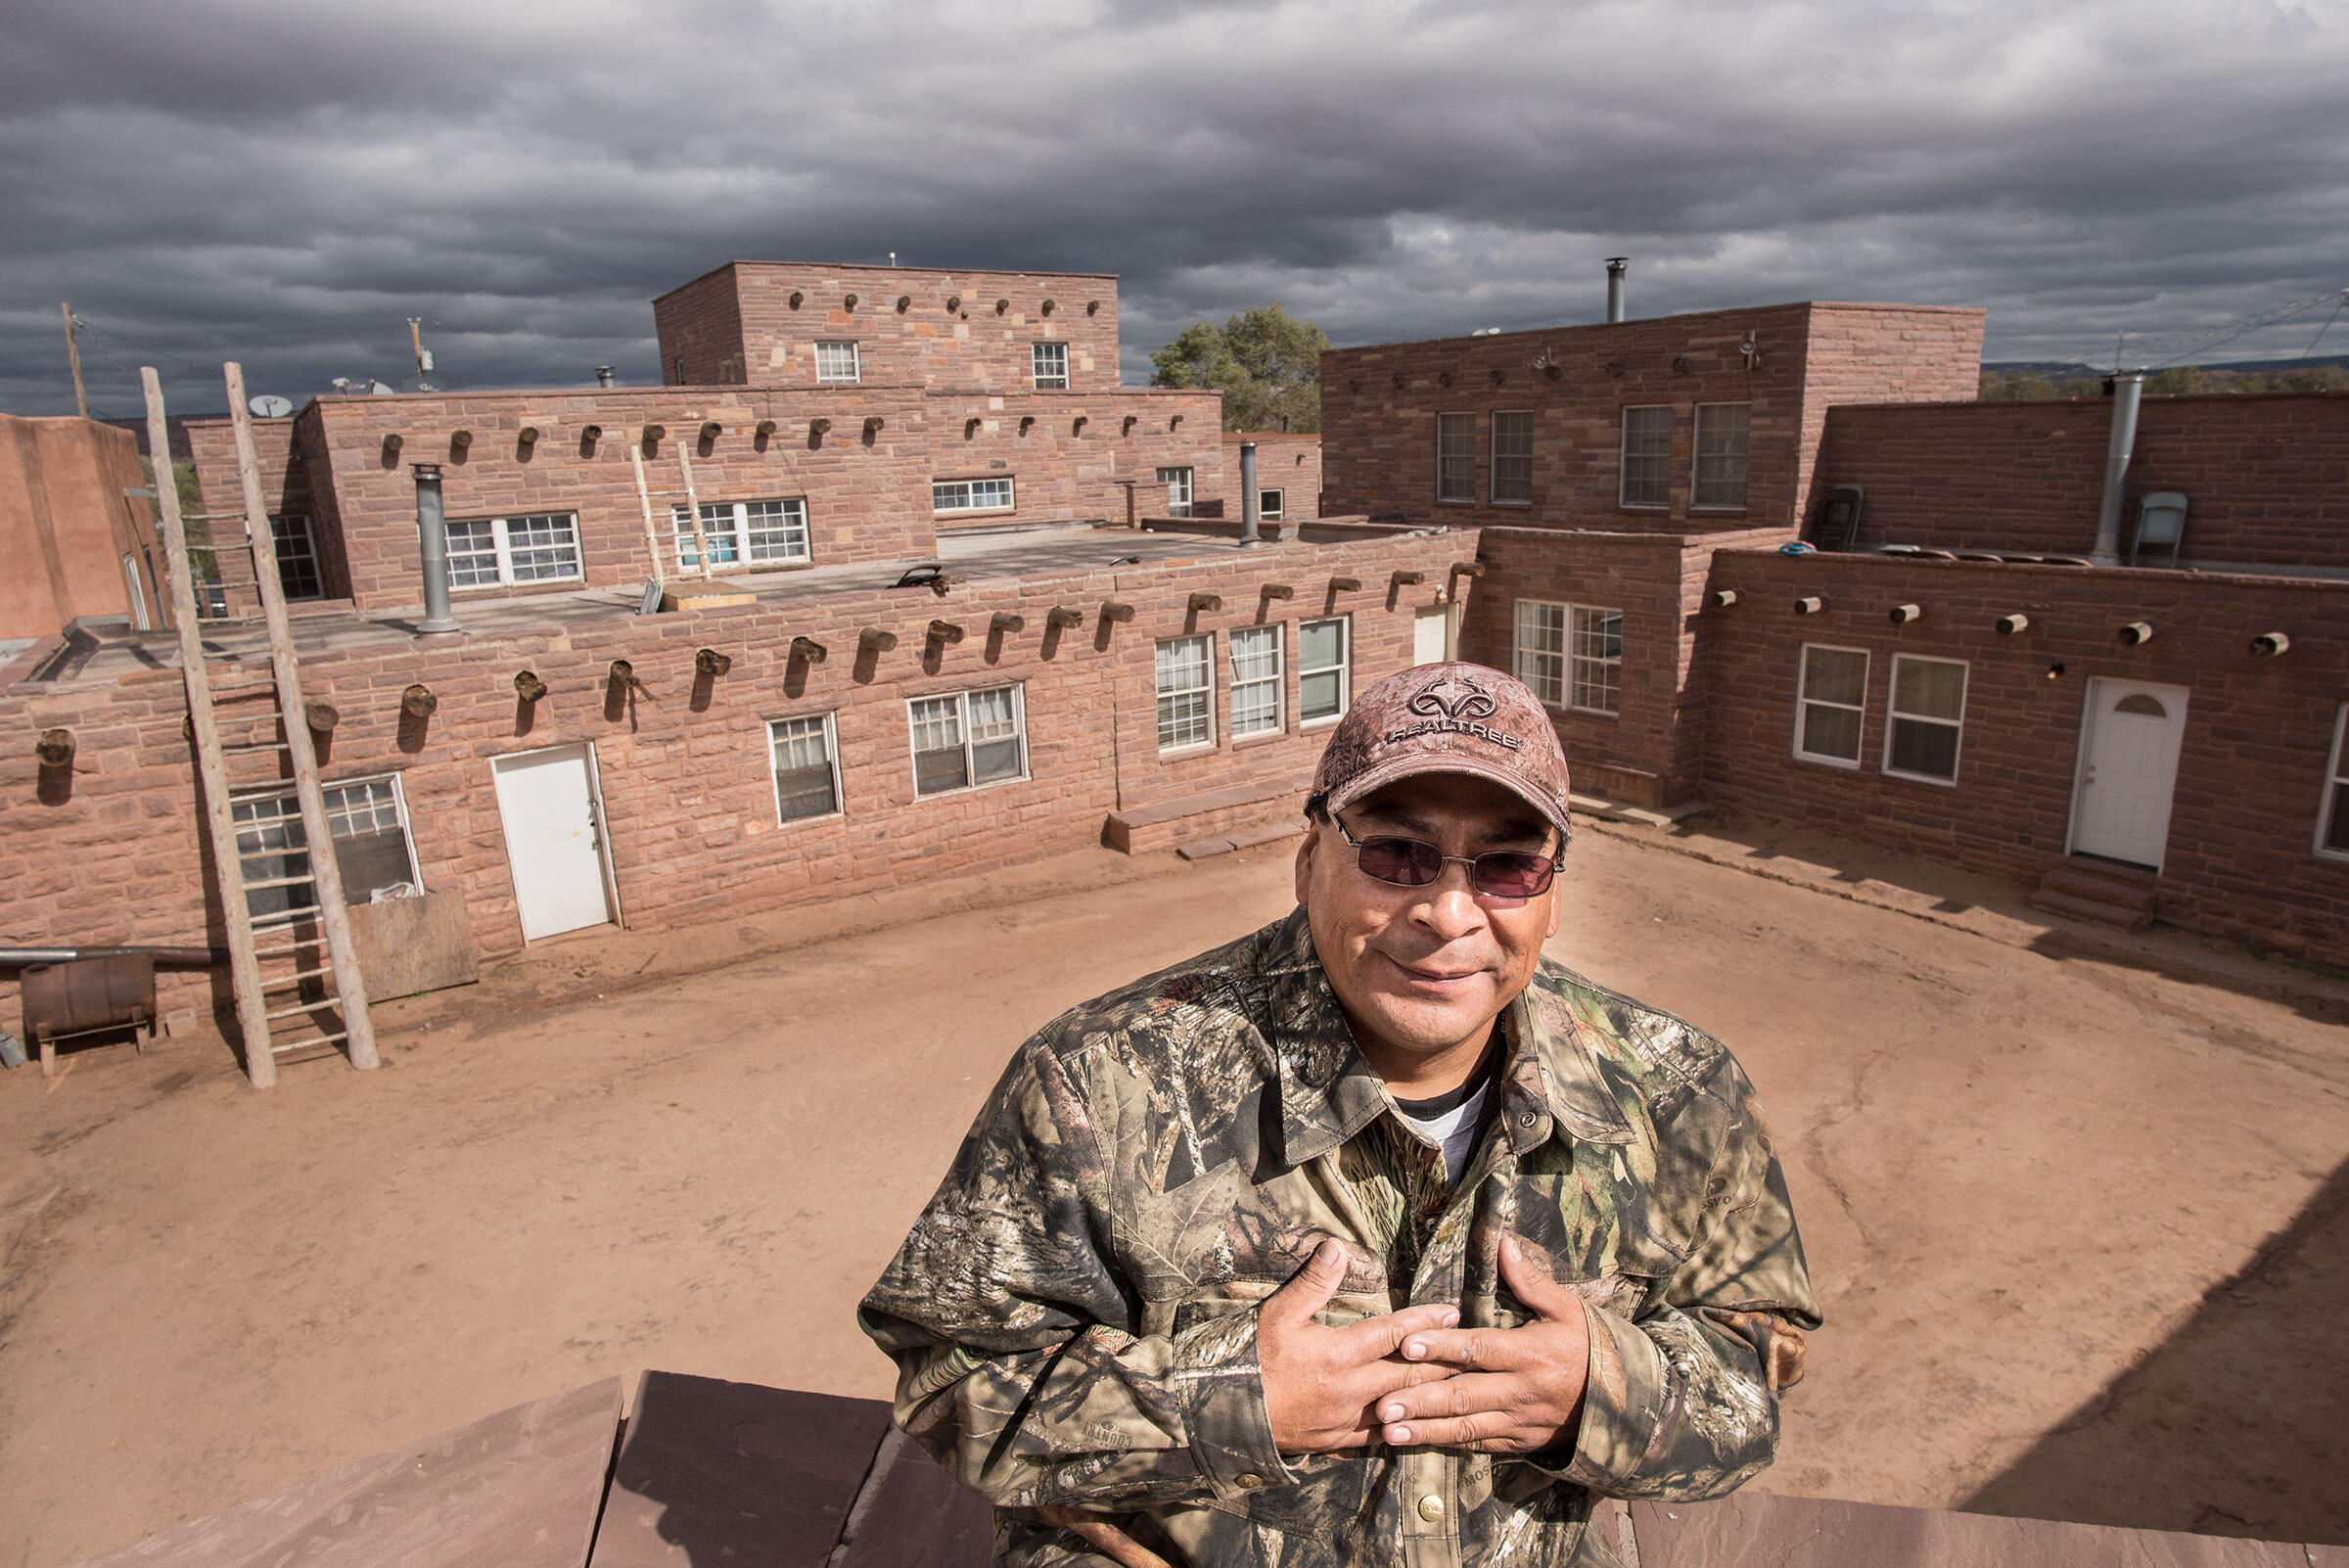 Native American Demand Is Driving a Black Market for Eagle